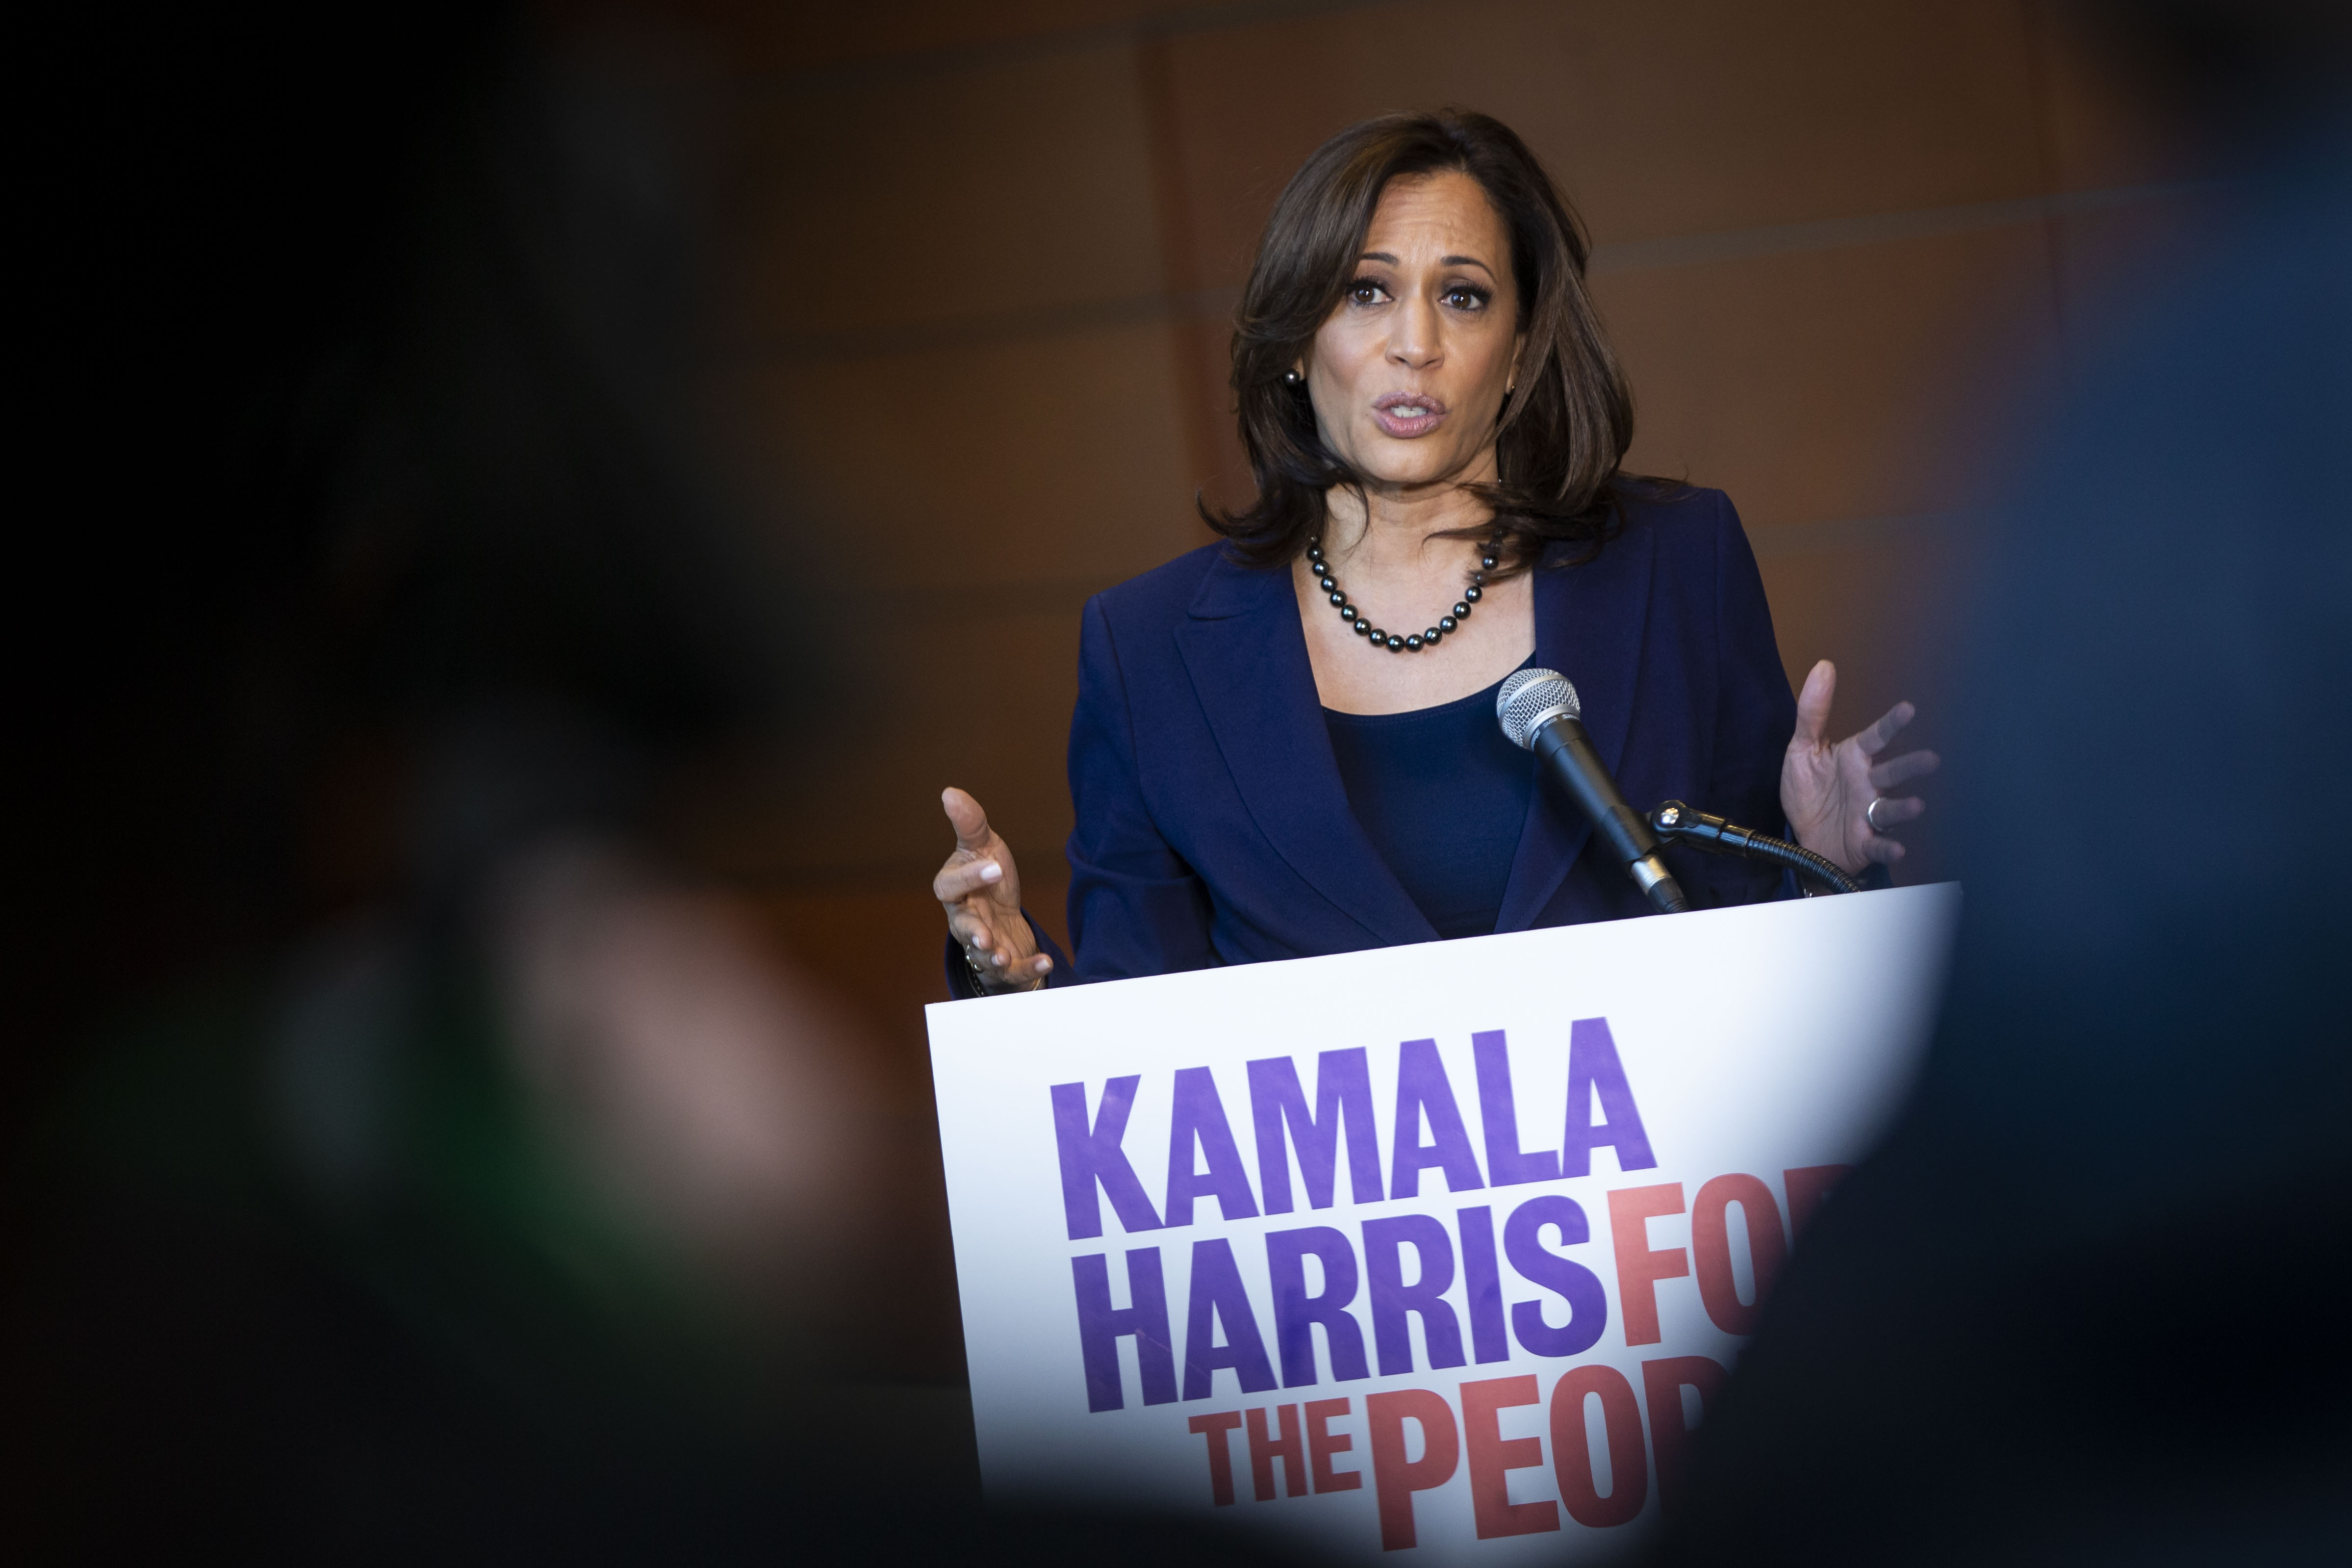 Kamala Harris has been criticized for her criminal justice